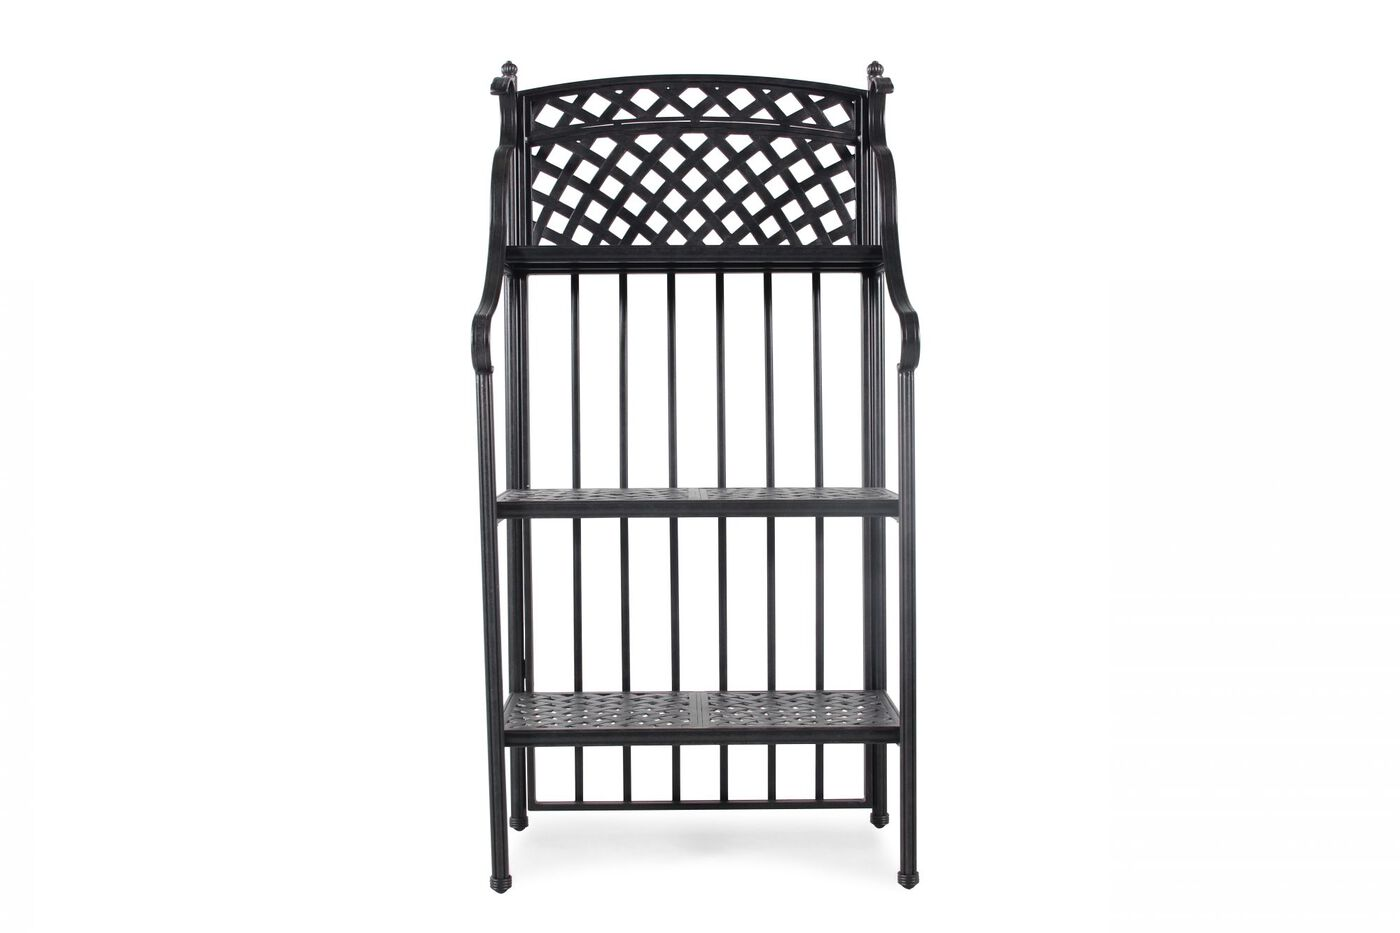 Mathis Brothers Patio Furniture world source castle rock patio baker's rack | mathis brothers